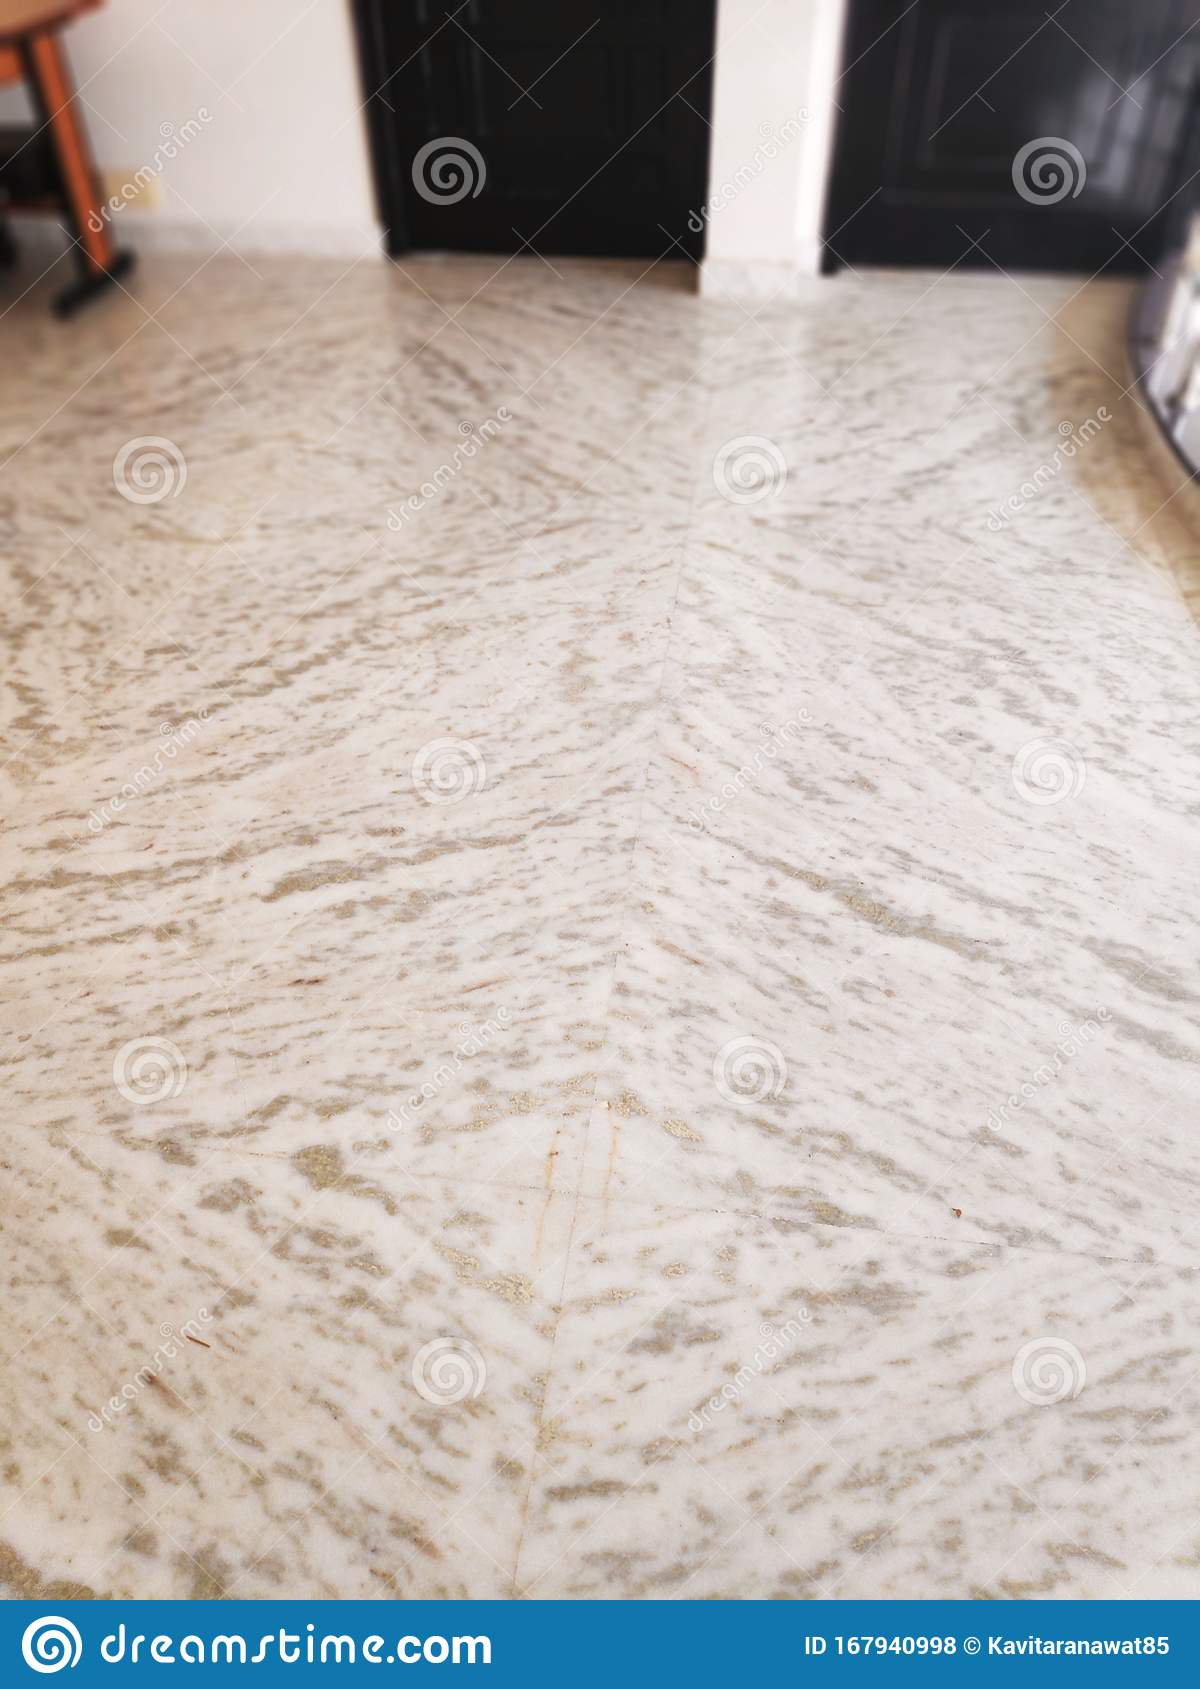 Empty Room With Marble Floor Stock Photo Image Of Indoor Contemporary 167940998